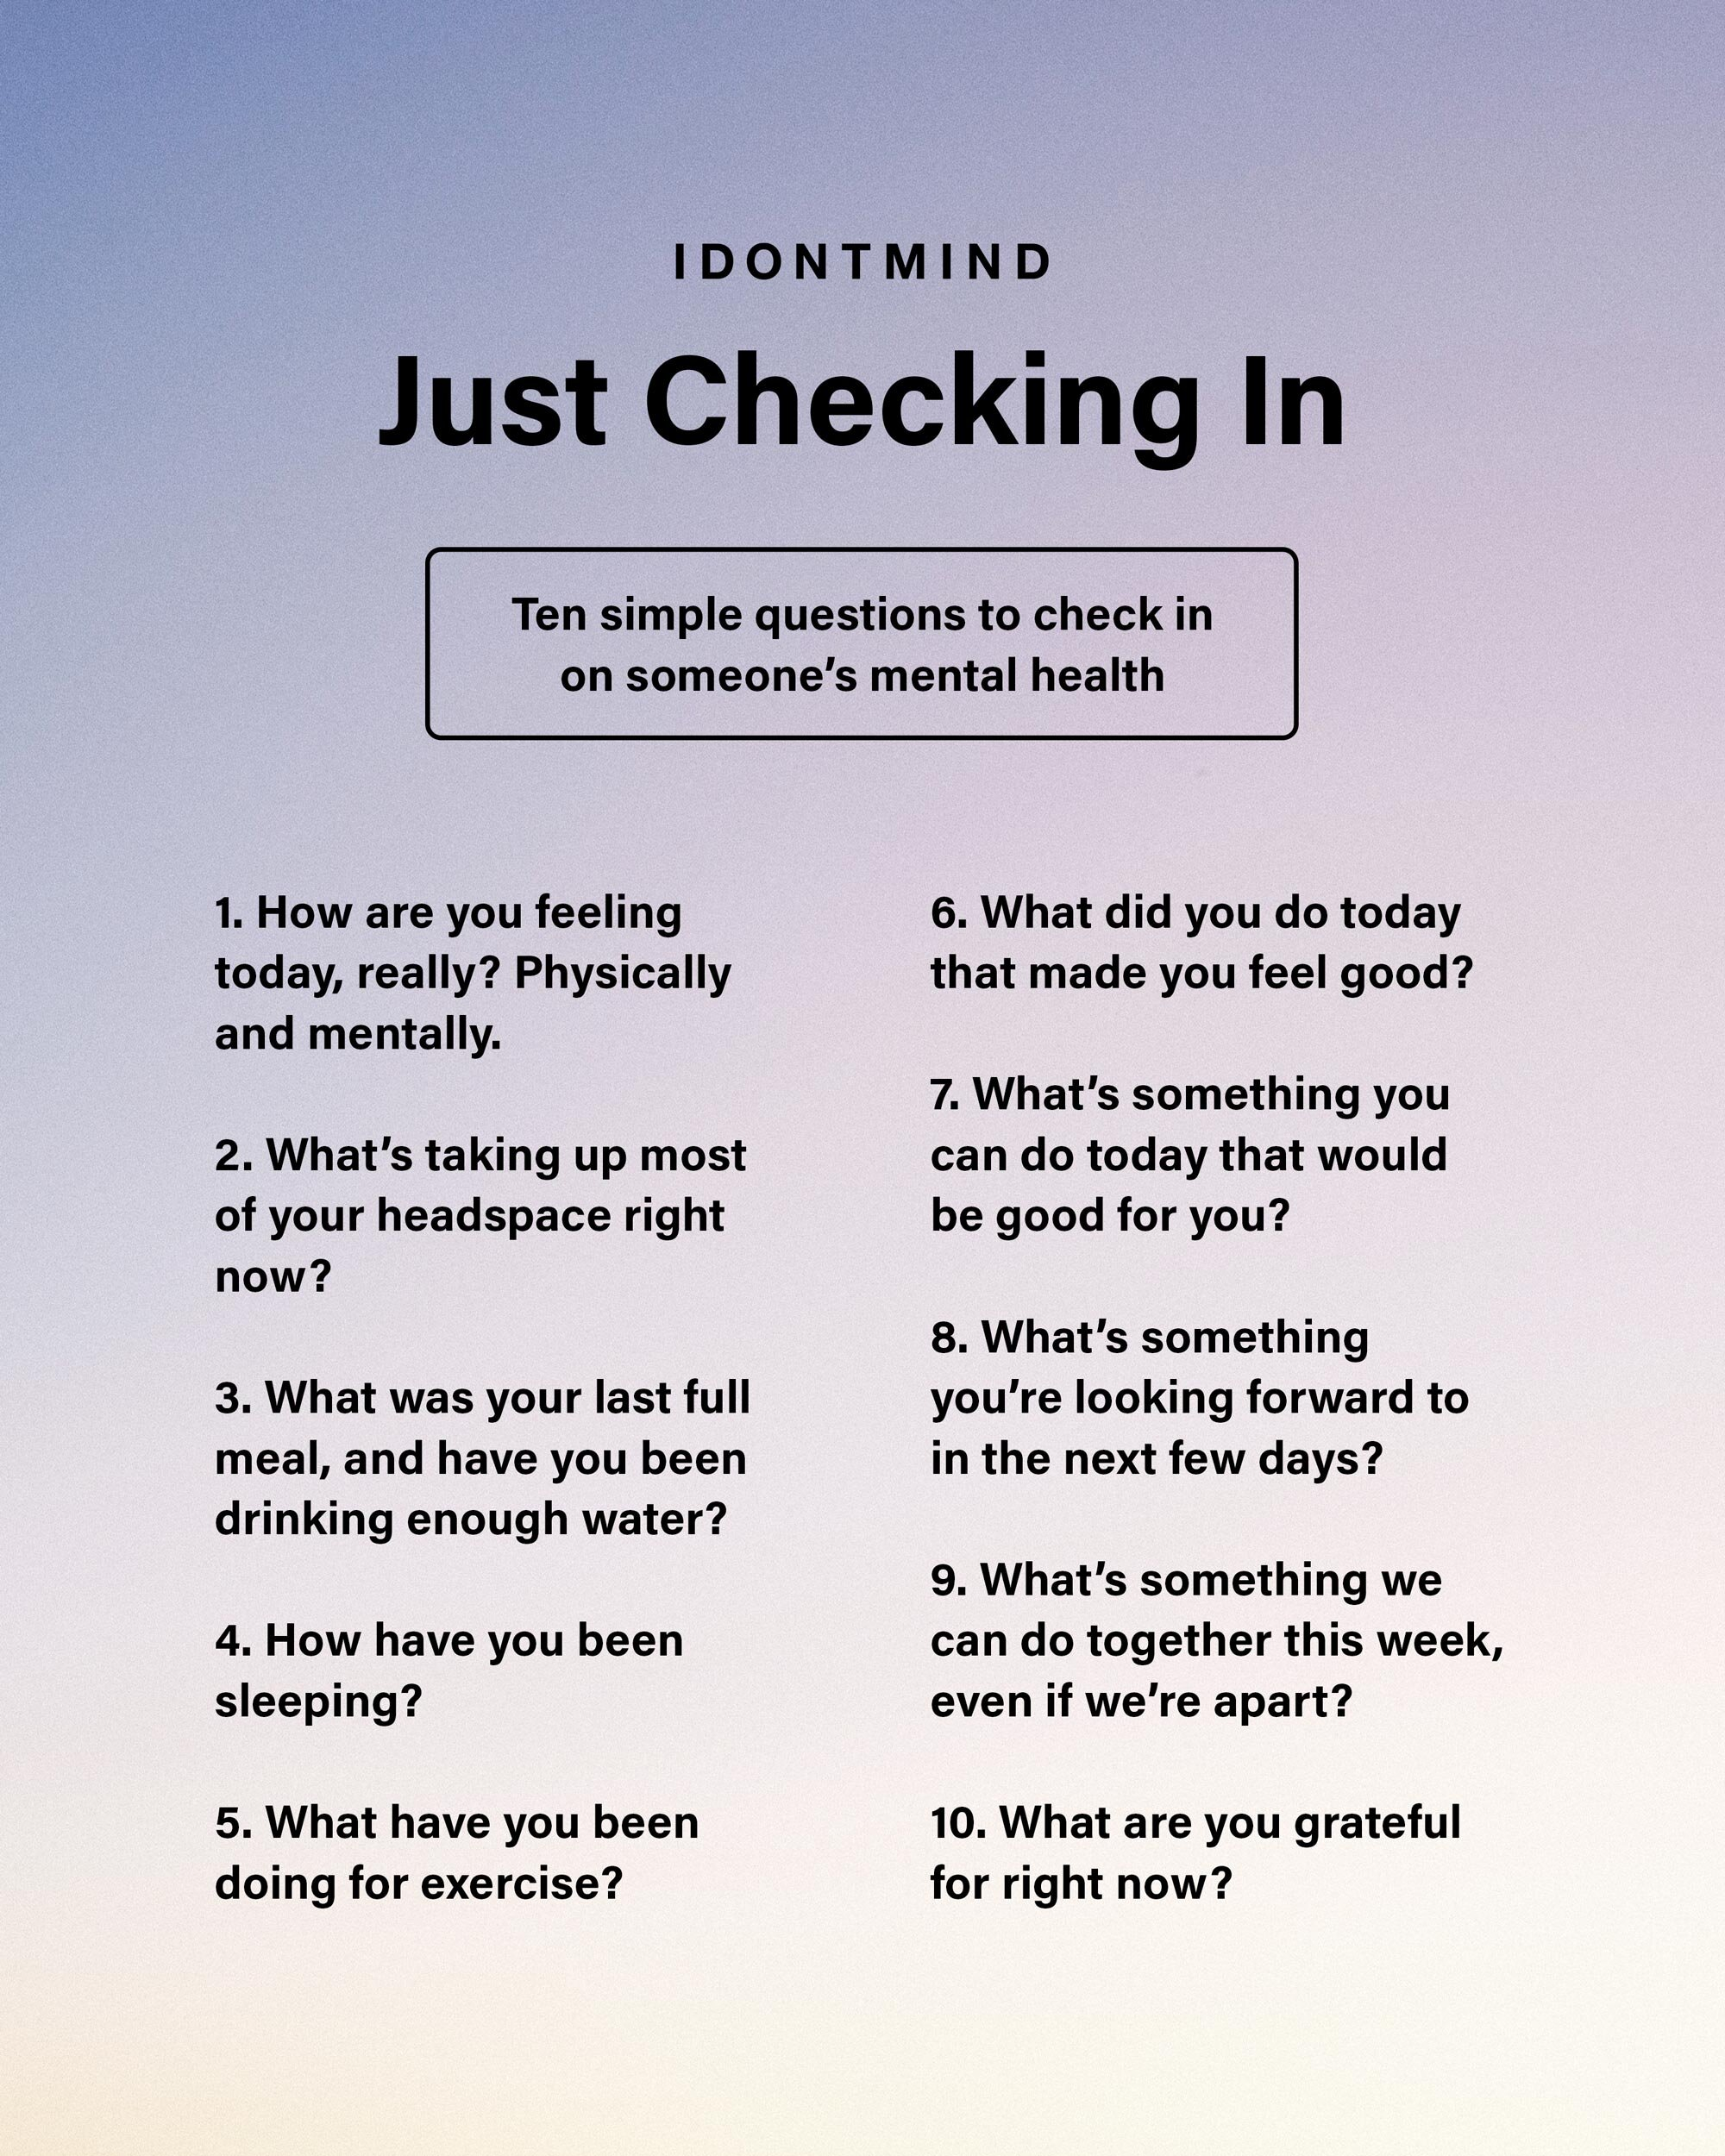 Just Checking In 10 Minutes 10 Questions Idontmind Your Mind Matters Talk About It